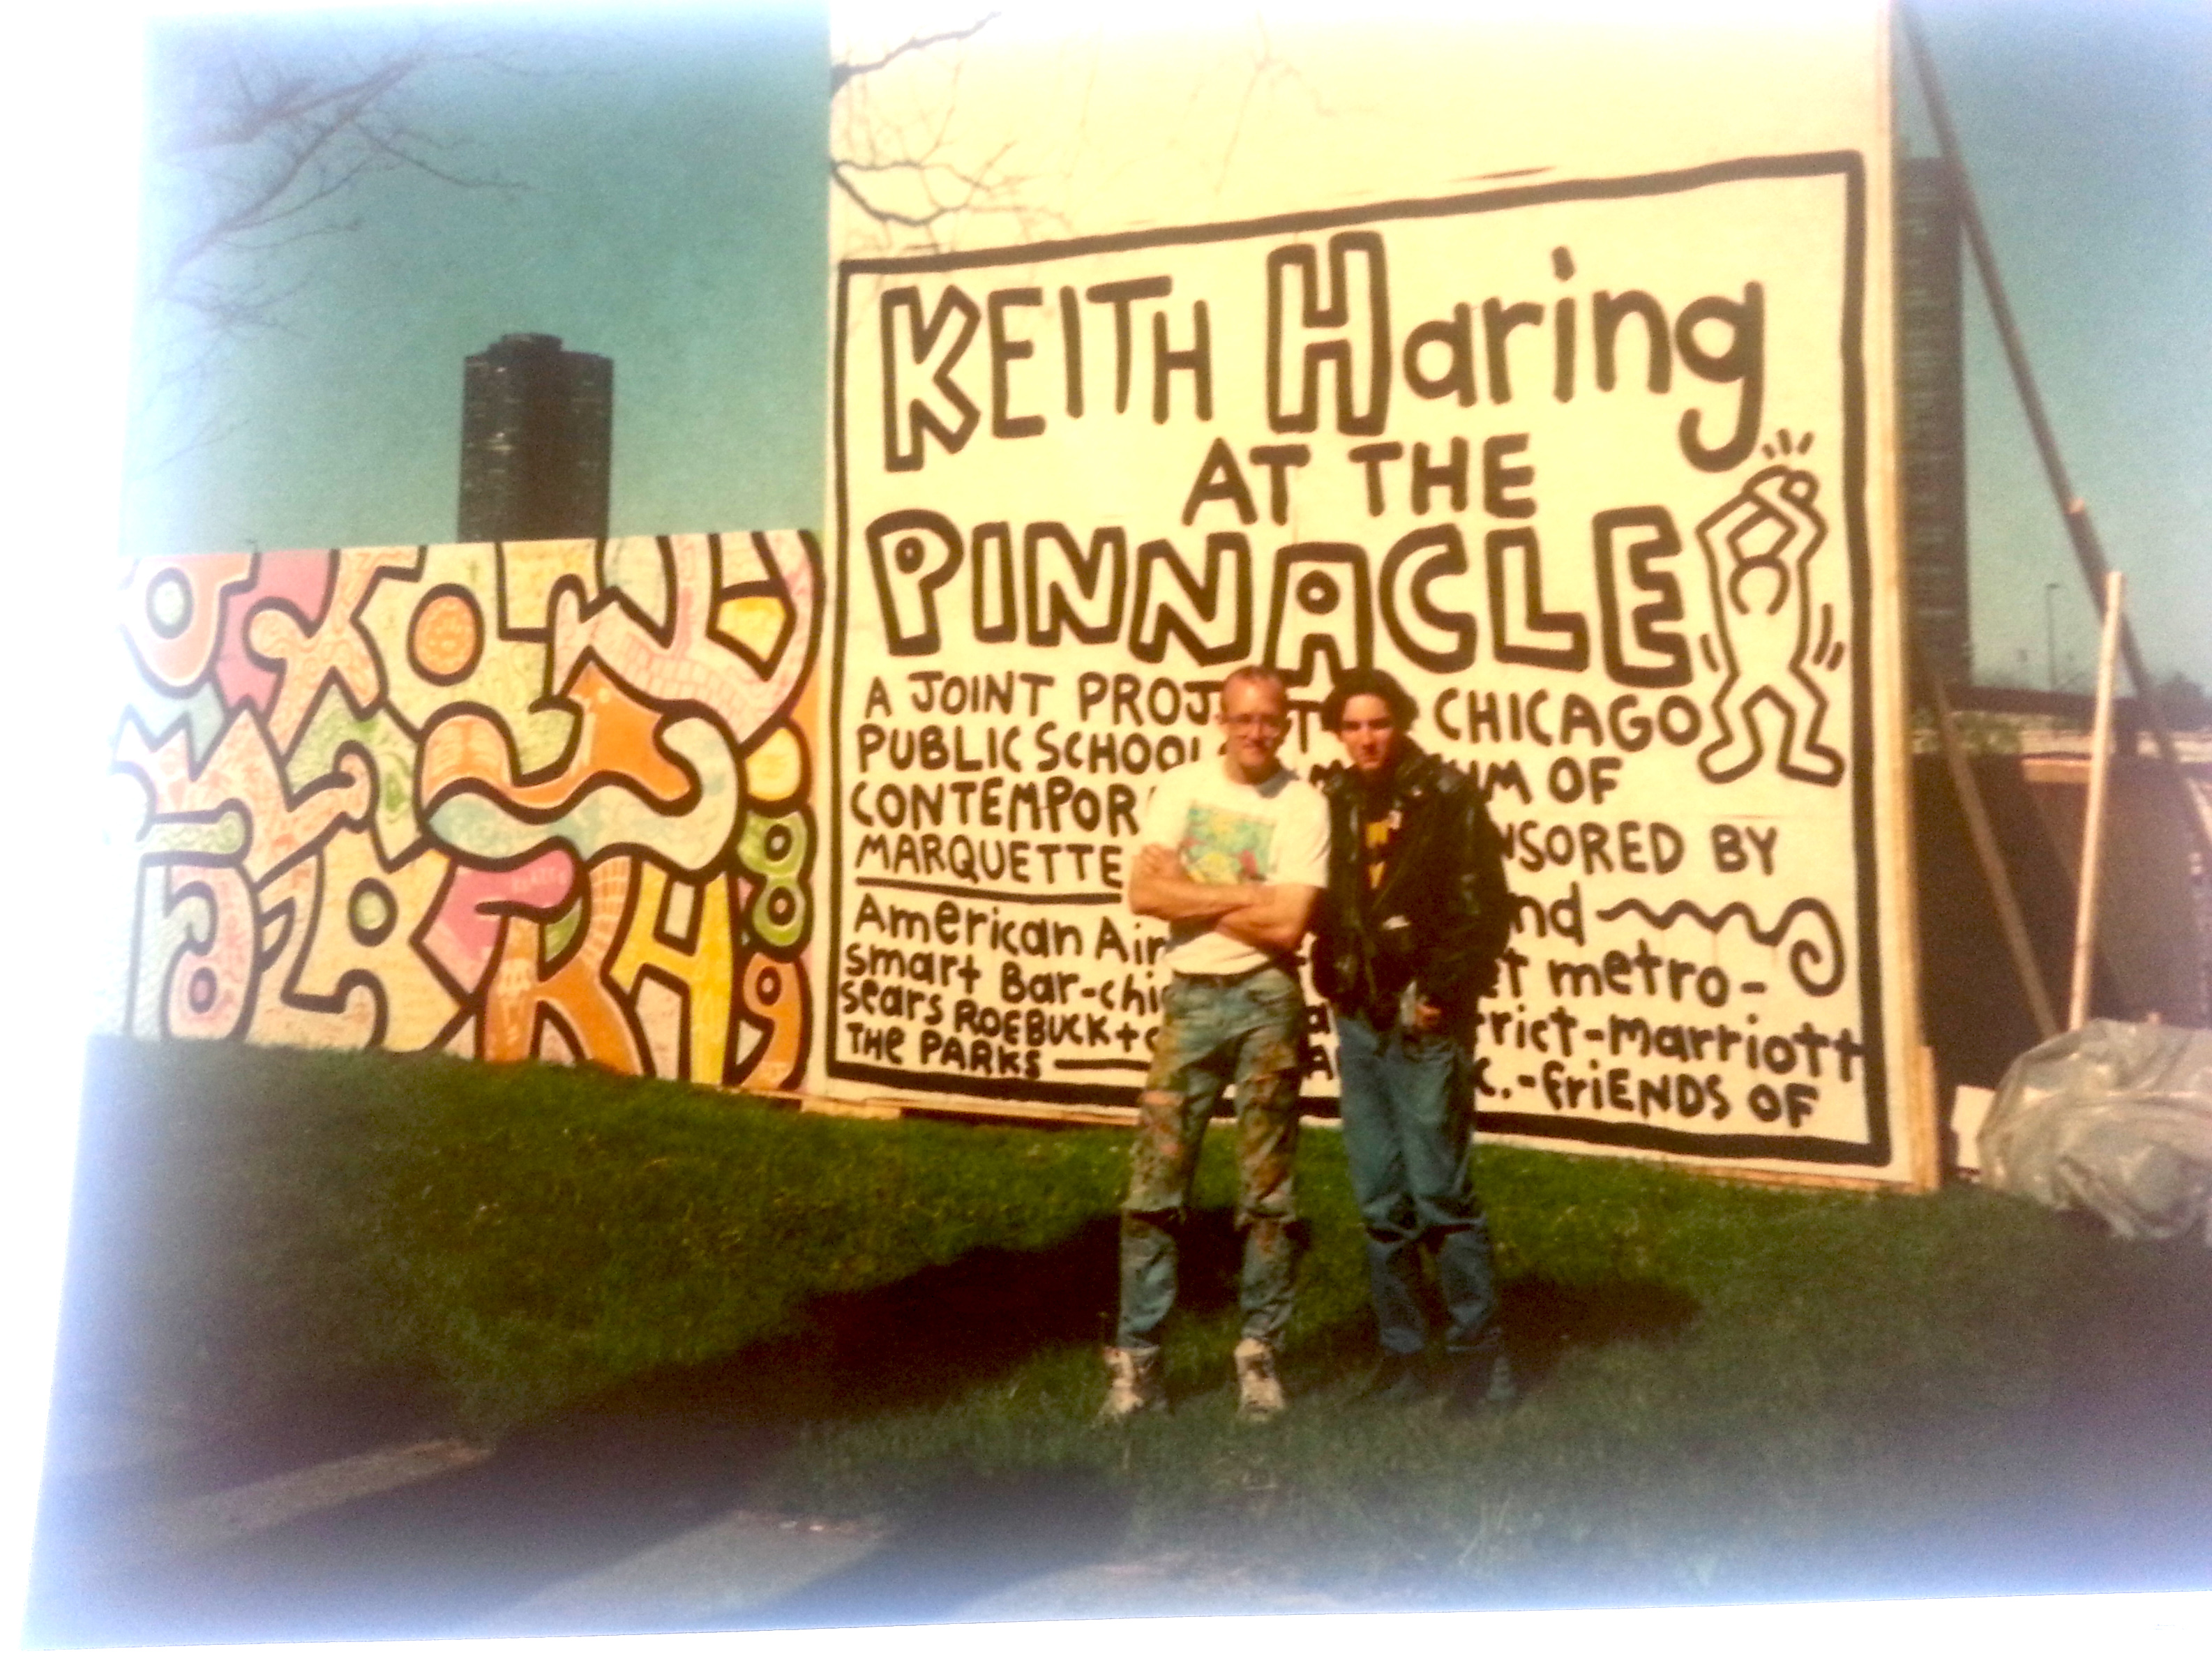 Adal with his hero, Keith Haring, in high school